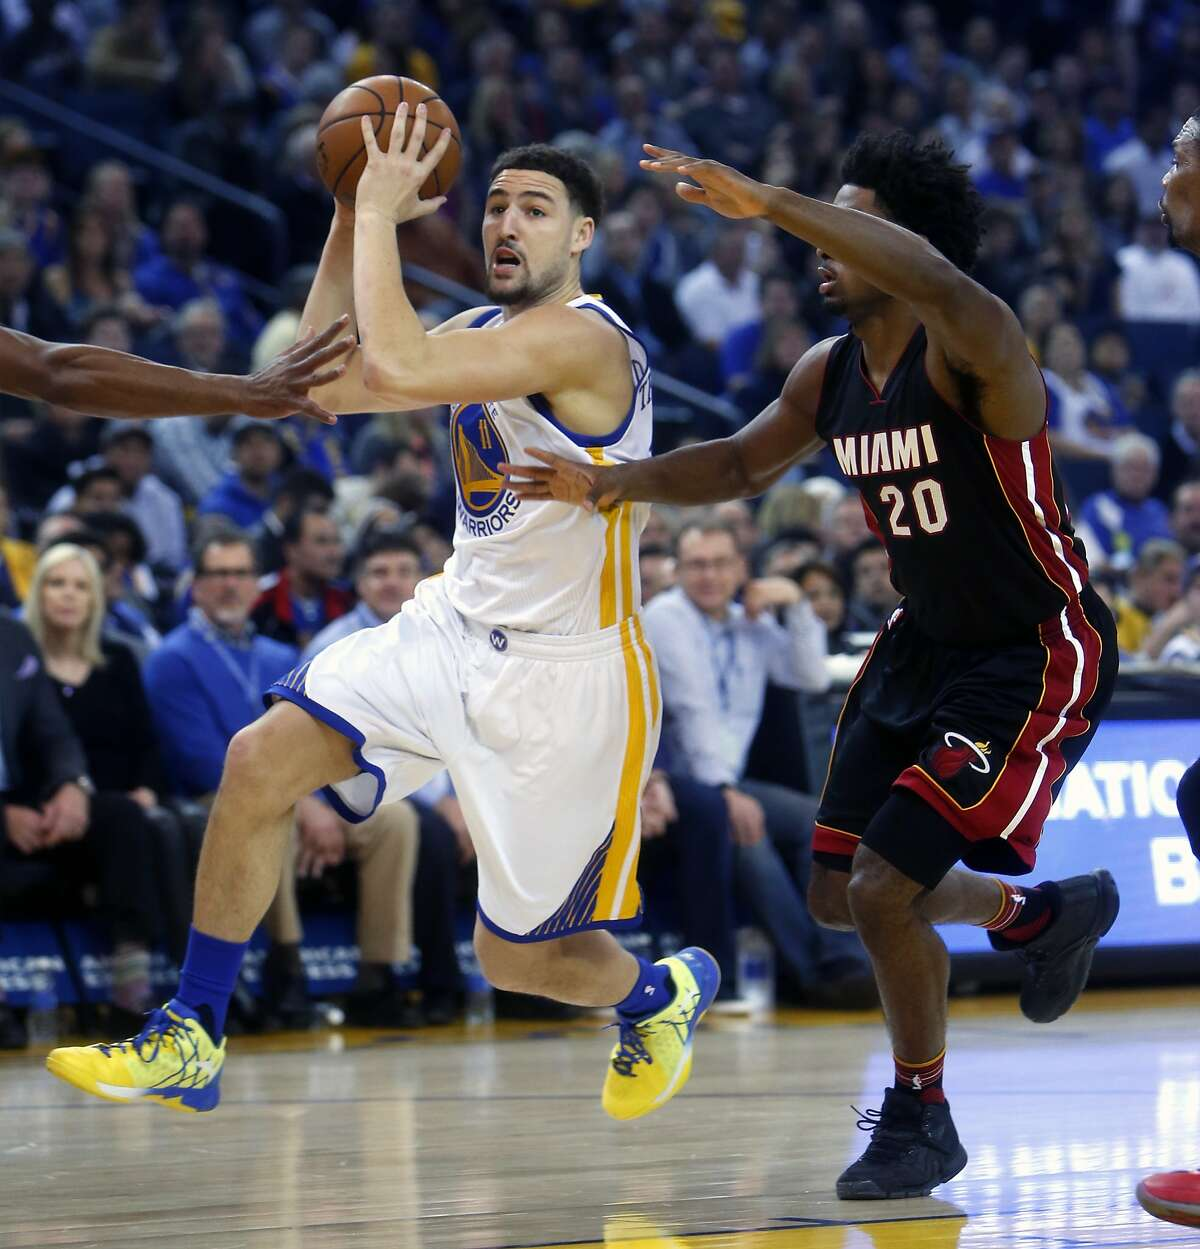 Golden State Warriors' Klay Thompson drives past Miami Heat's Justise Winslow in 1st quarter during NBA game at Oracle Arena in Oakland, Calif., on Monday, January 11, 2016.